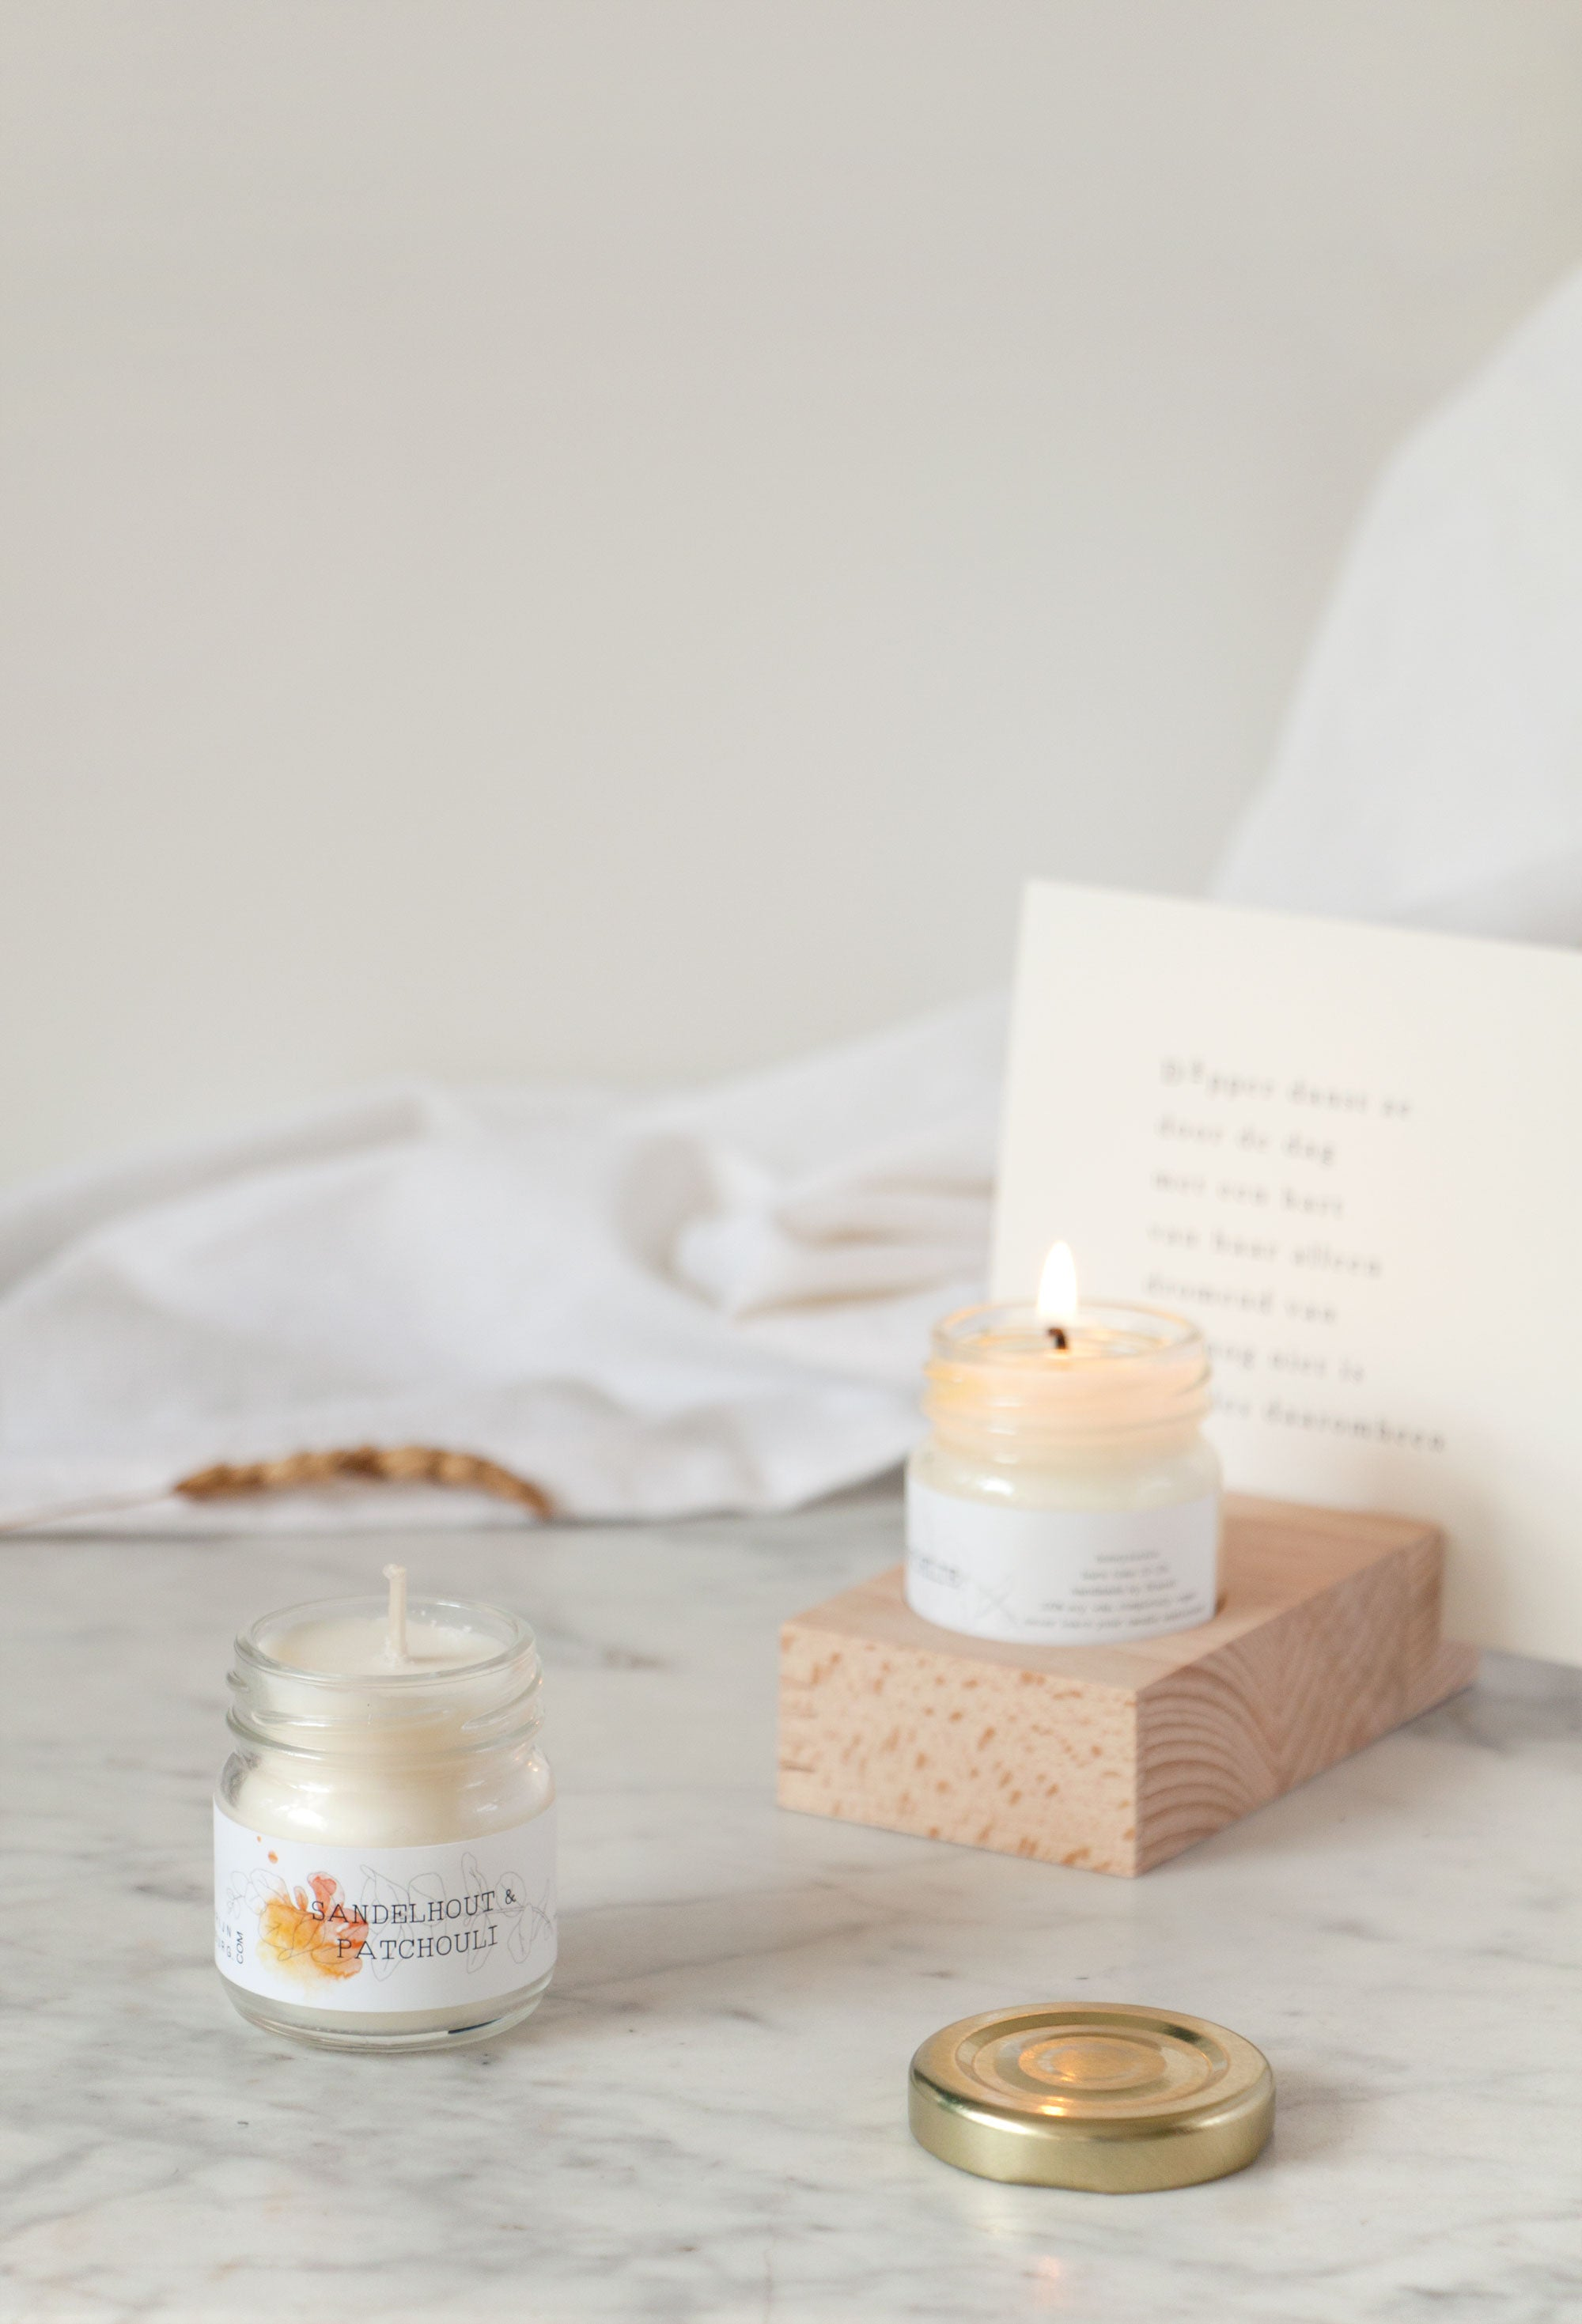 Hold it candle Sandelhout & Patchouli